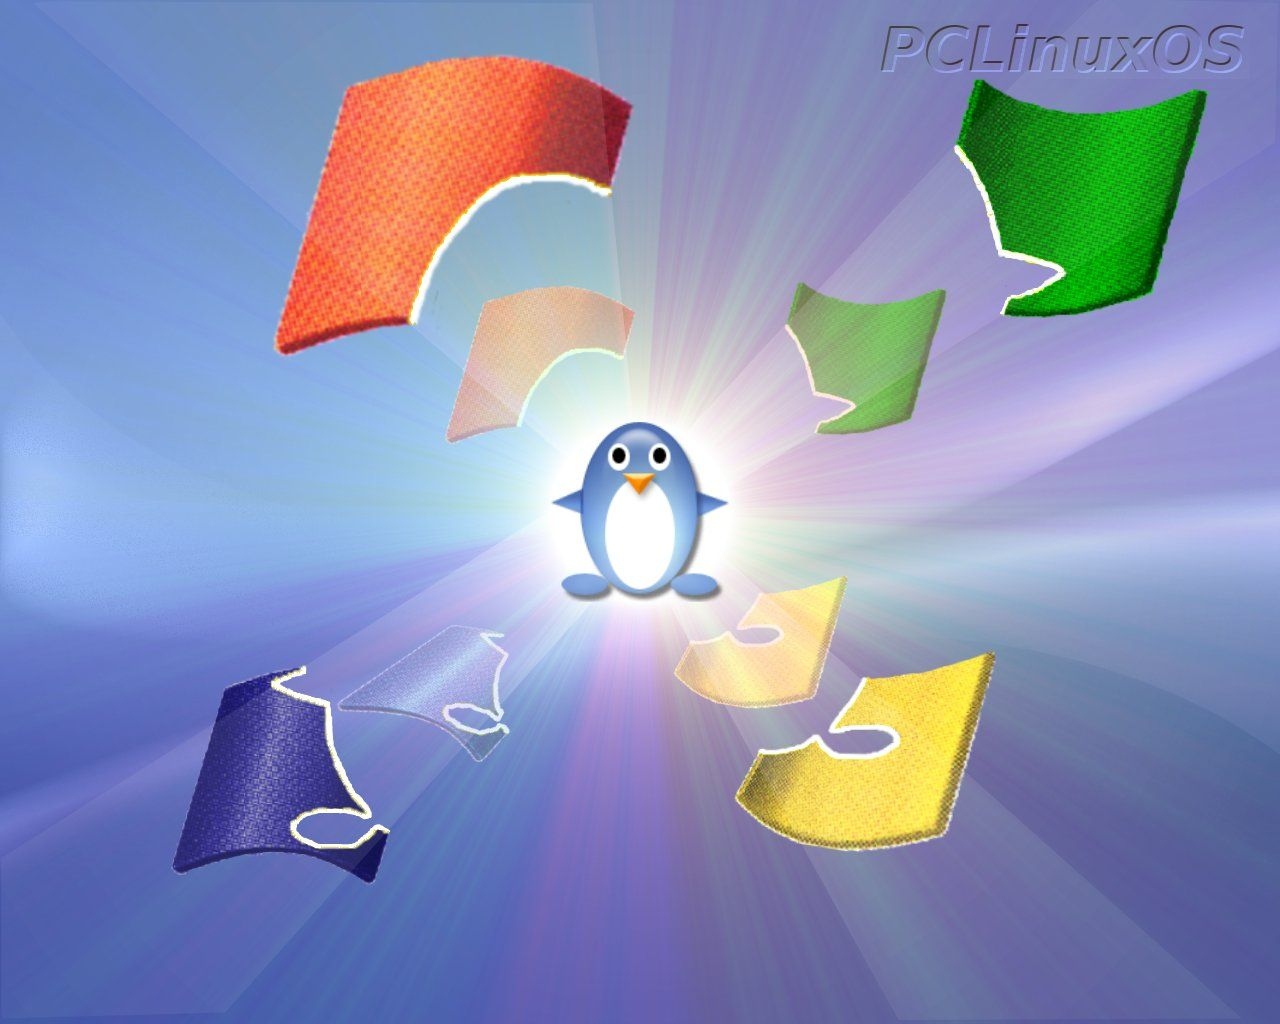 wallpapers linux pa rato